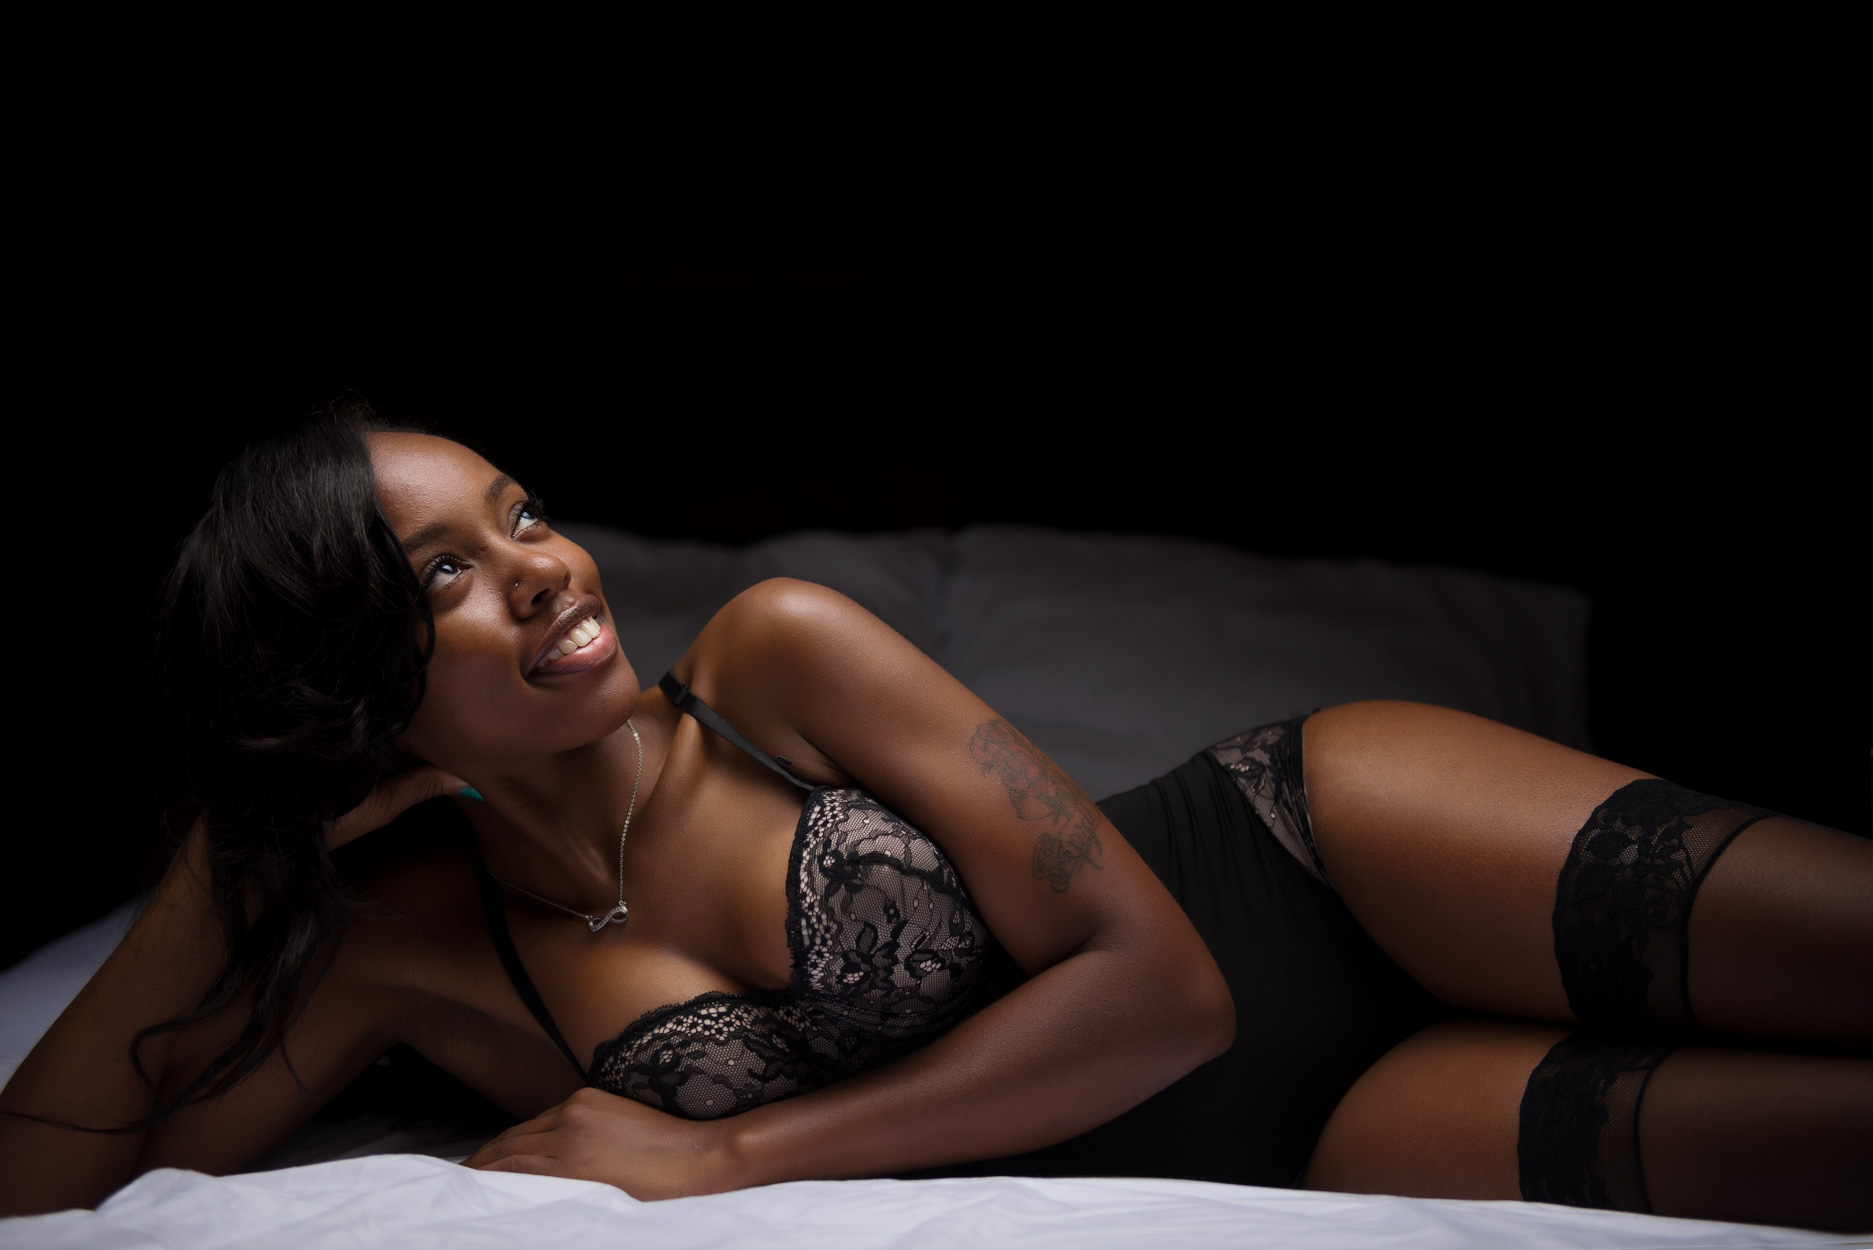 Intimate Photography by Boudoir by Sean